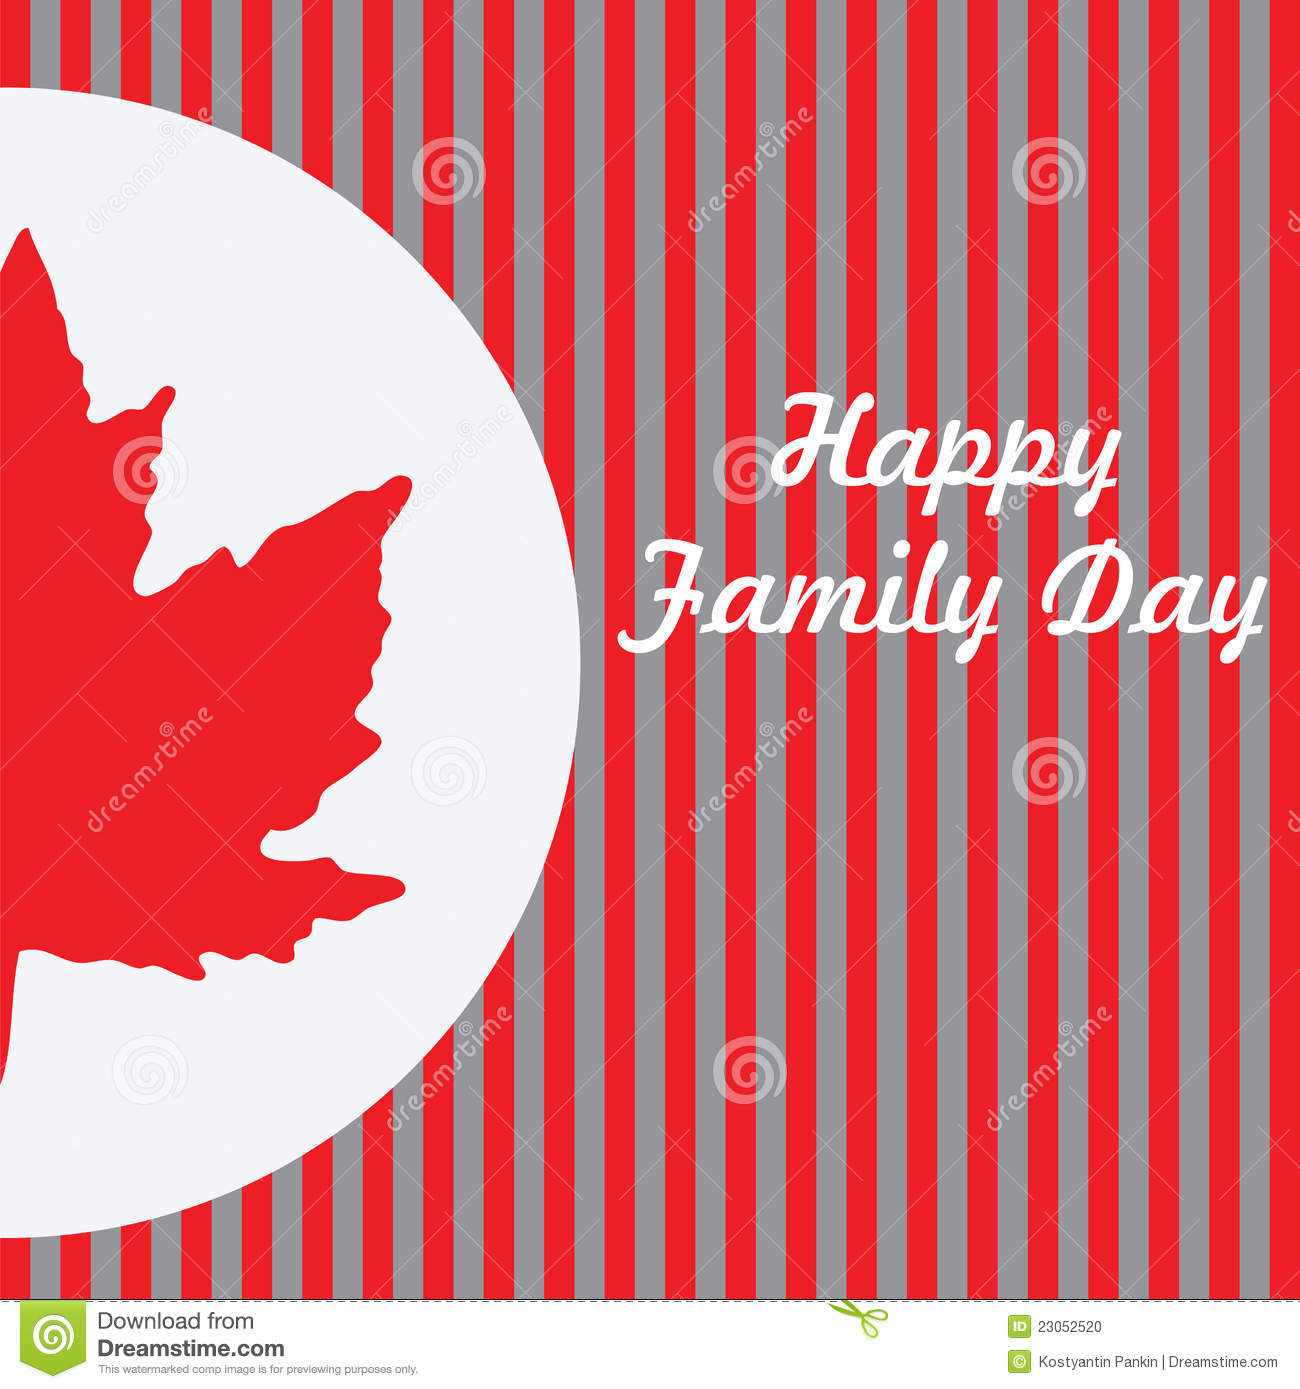 Happy Family Day - Canada. ector illustration on a holiday in Canada ...